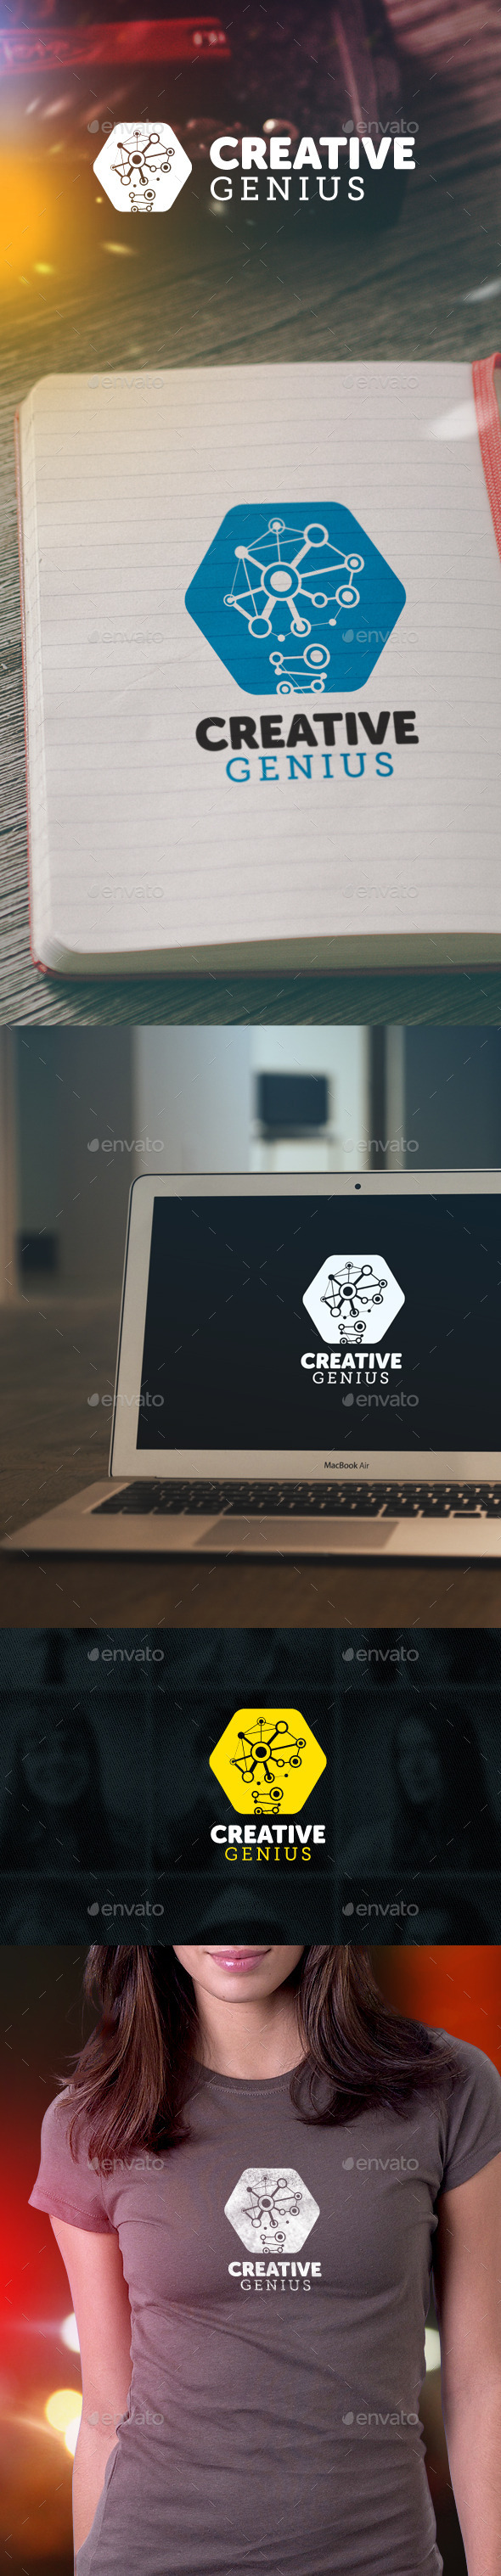 Creative Genius Logo - Abstract Logo Templates